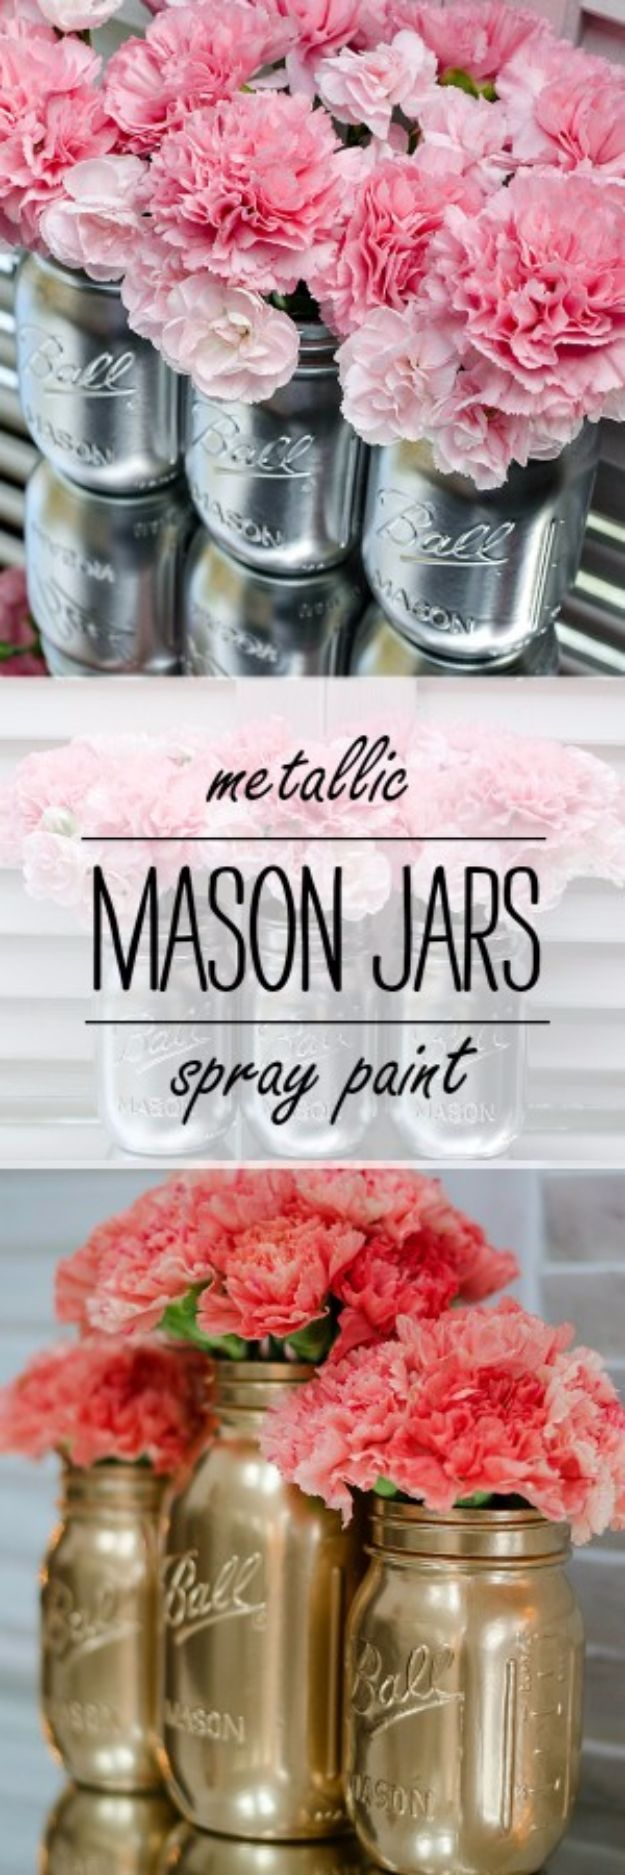 50 Cute DIY Mason Jar Crafts Mason jar lighting, Mason